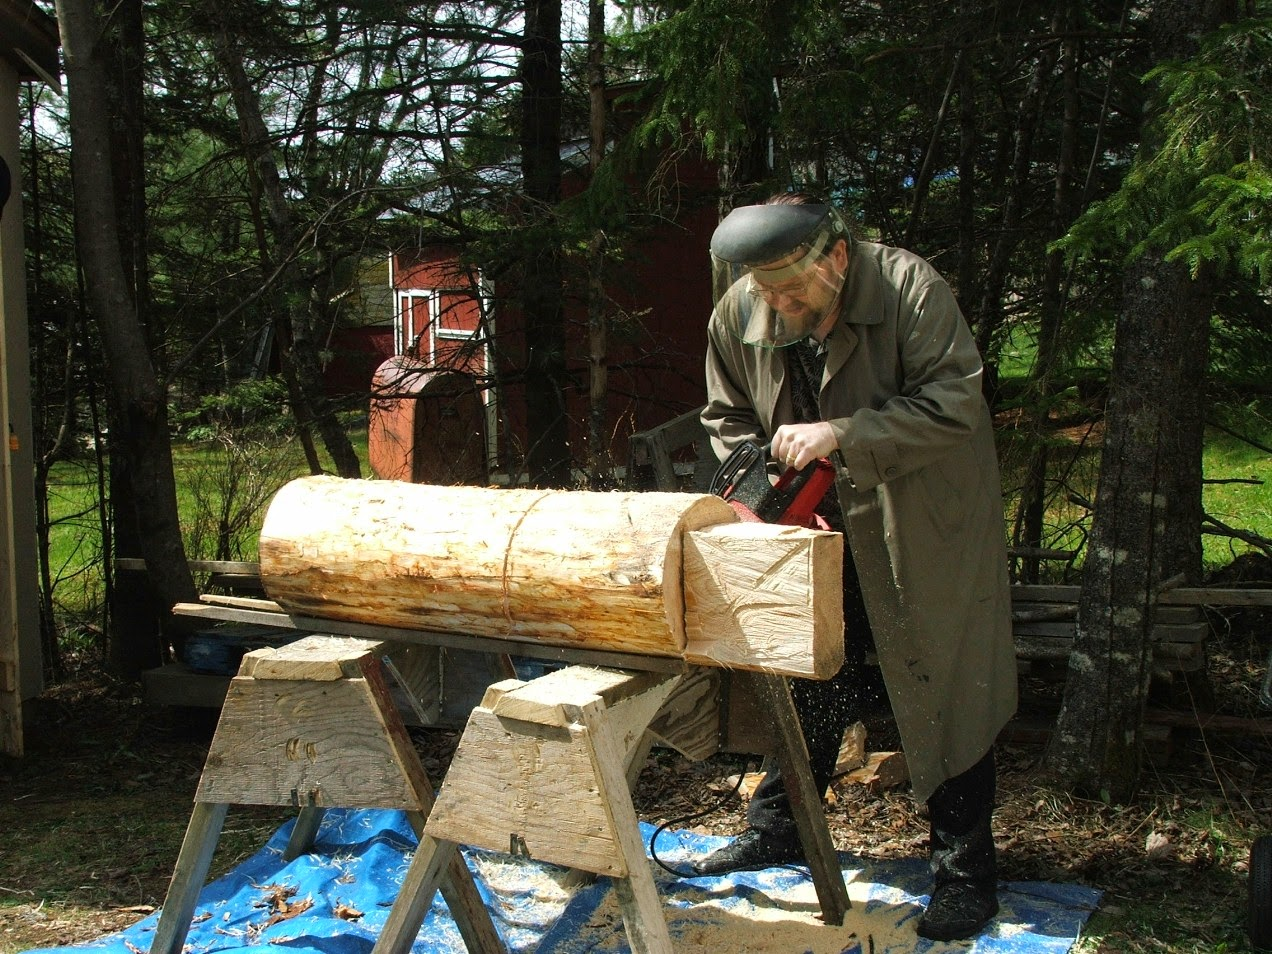 Yes, There I Am In April, 2012 Beginning Work On The Log That Was To Become  A Larger Than Normal Whirligig That Would Be Shown At The Beaverbrook.